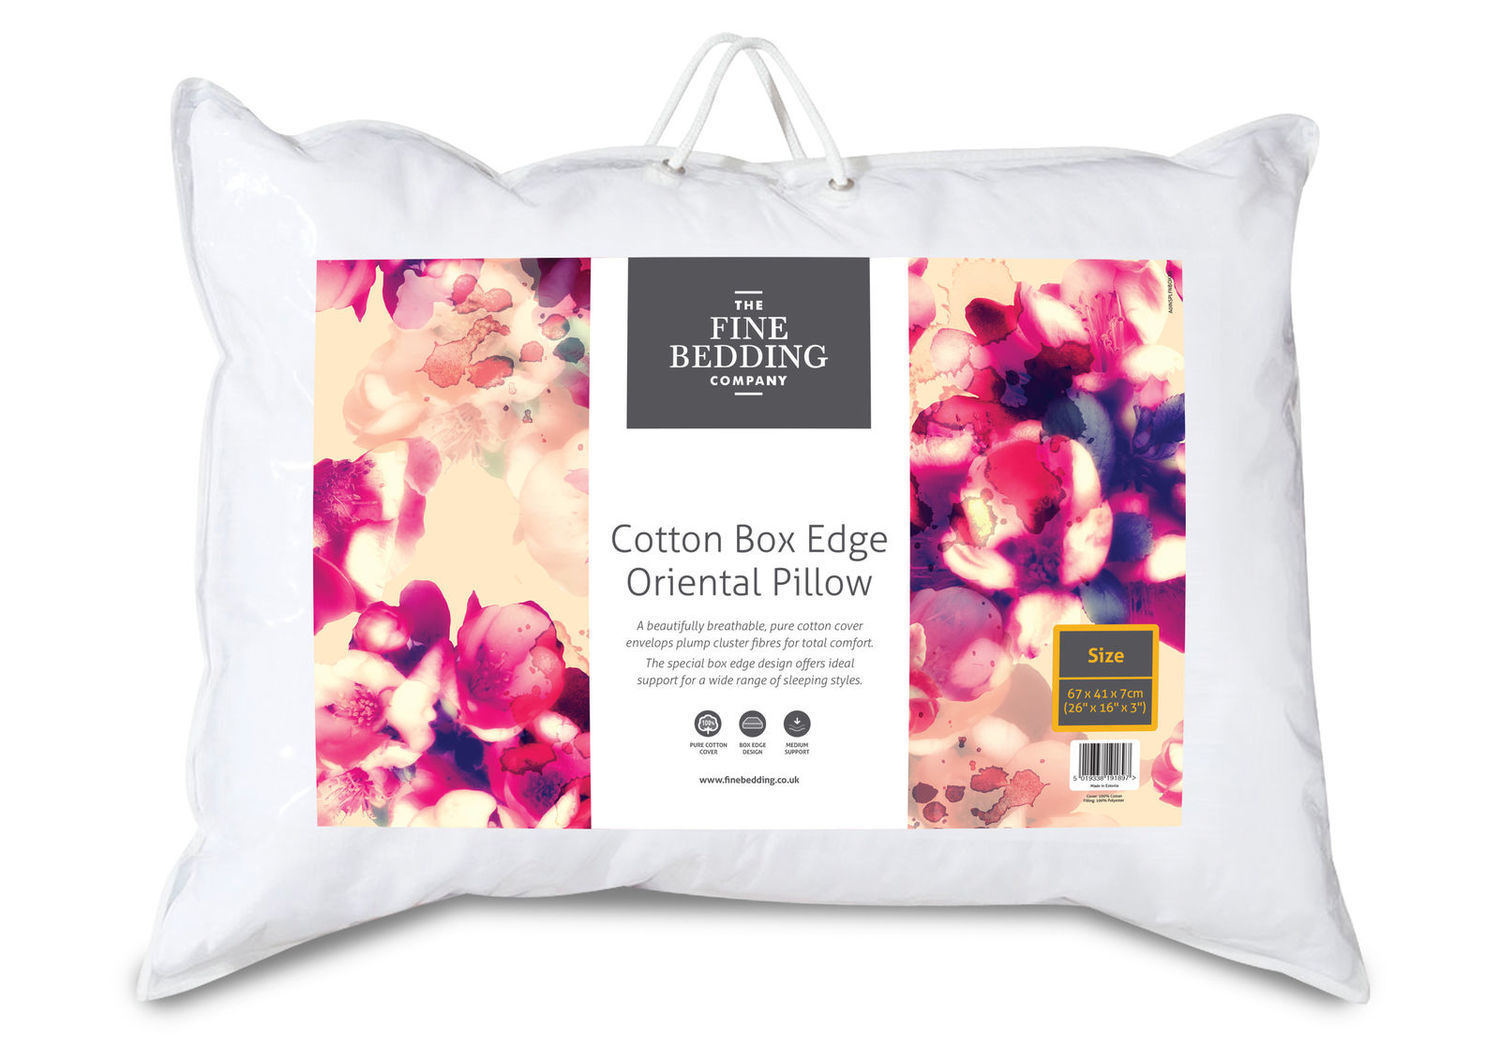 The Fine Bedding Company Cotton Box Edge Support Pillow